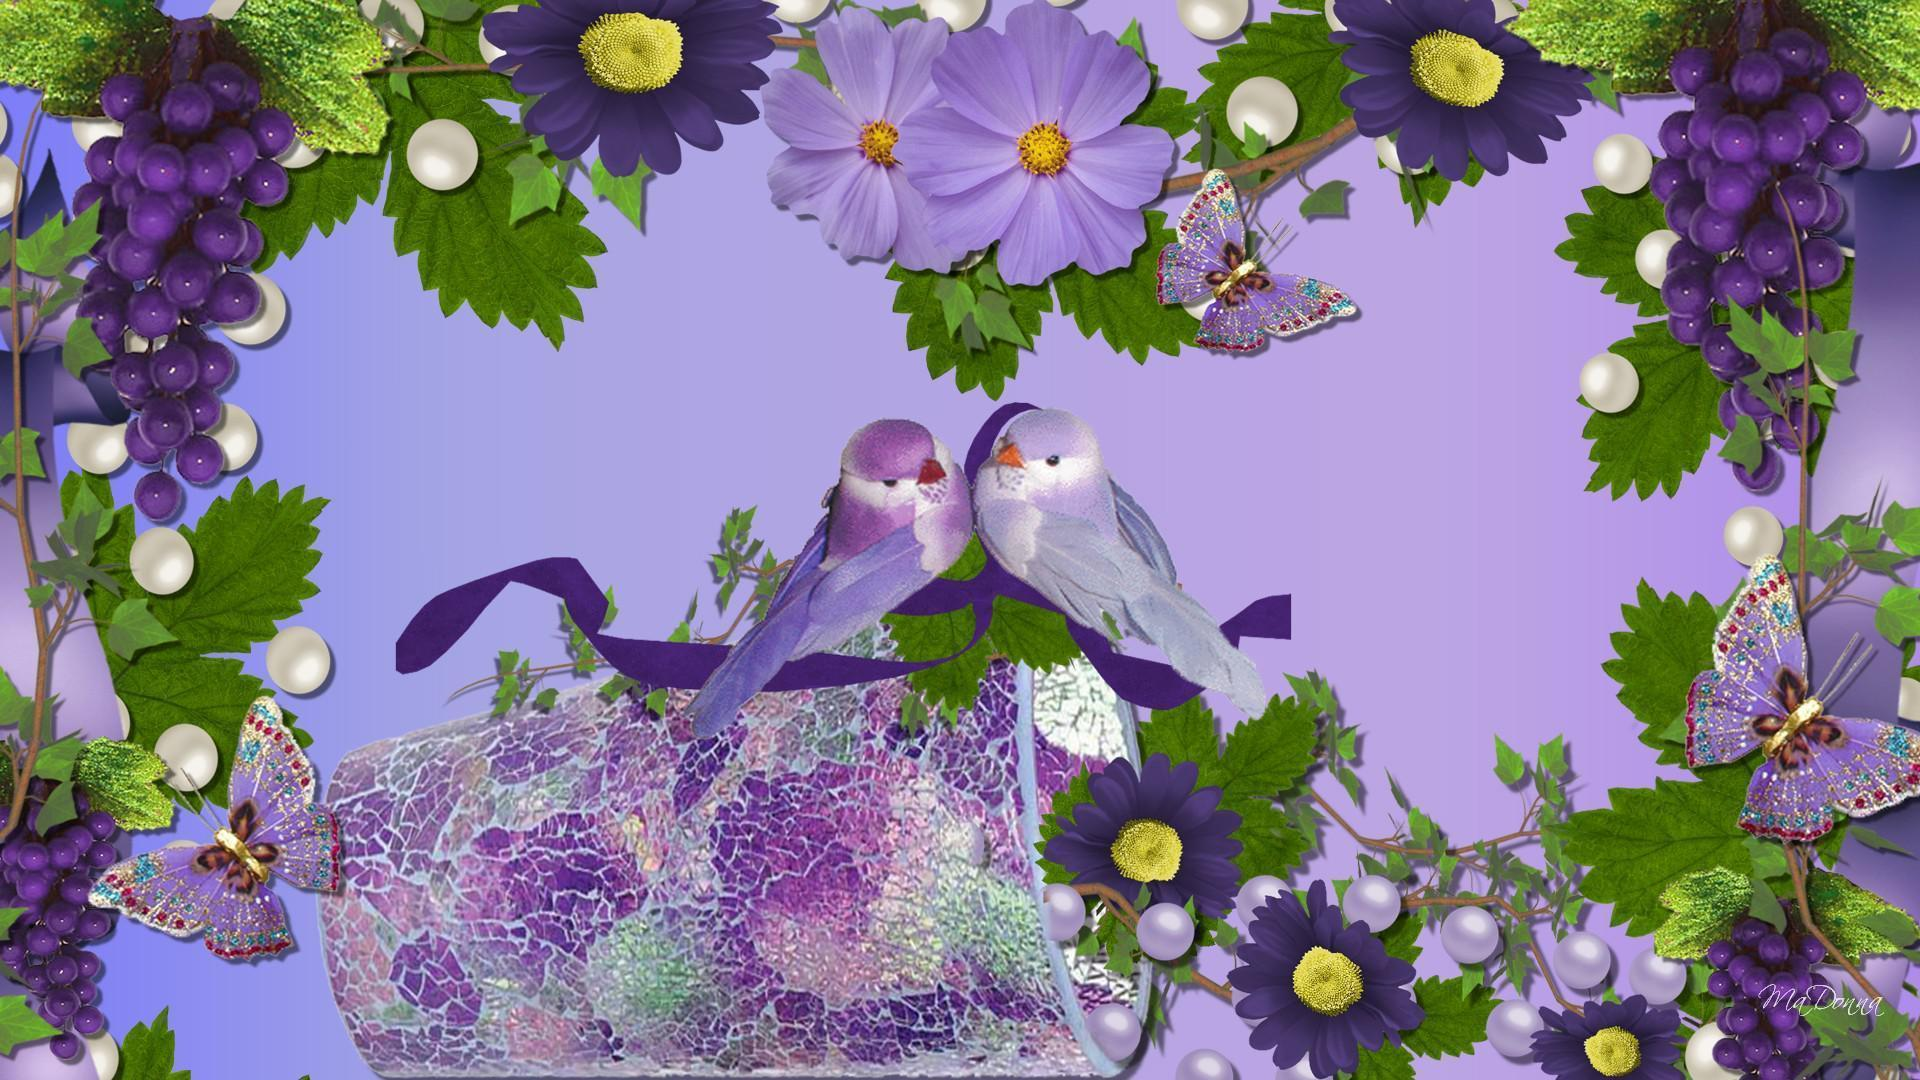 Beautiful Pictures Of Flowers And Butterflies Birds Love Birds Wallpapers Wallpaper Cave